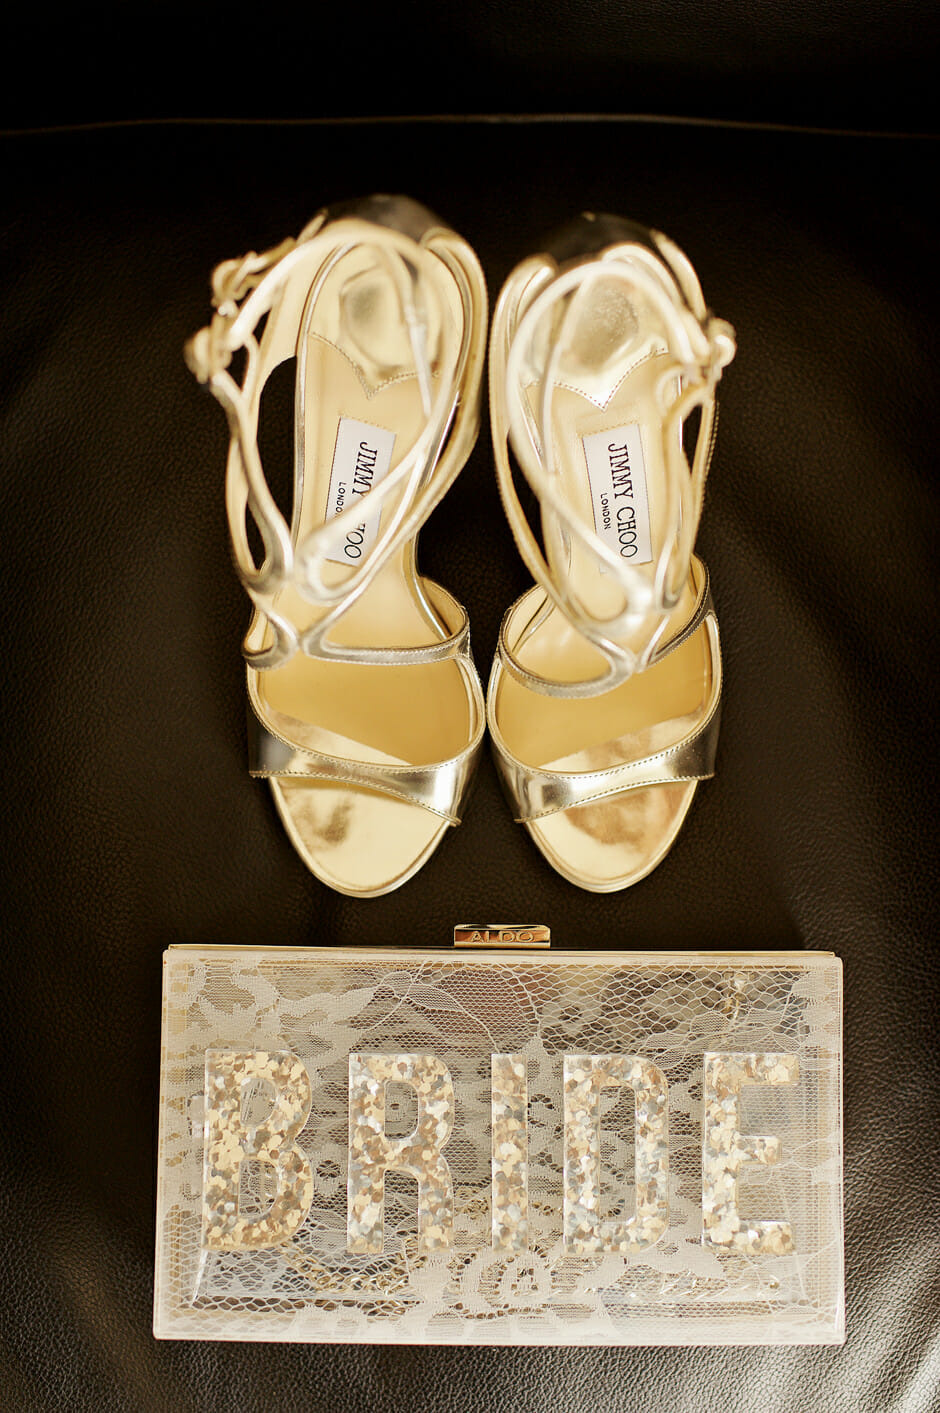 bride bag and jimmy Choo shoes for a wedding in athens riviera